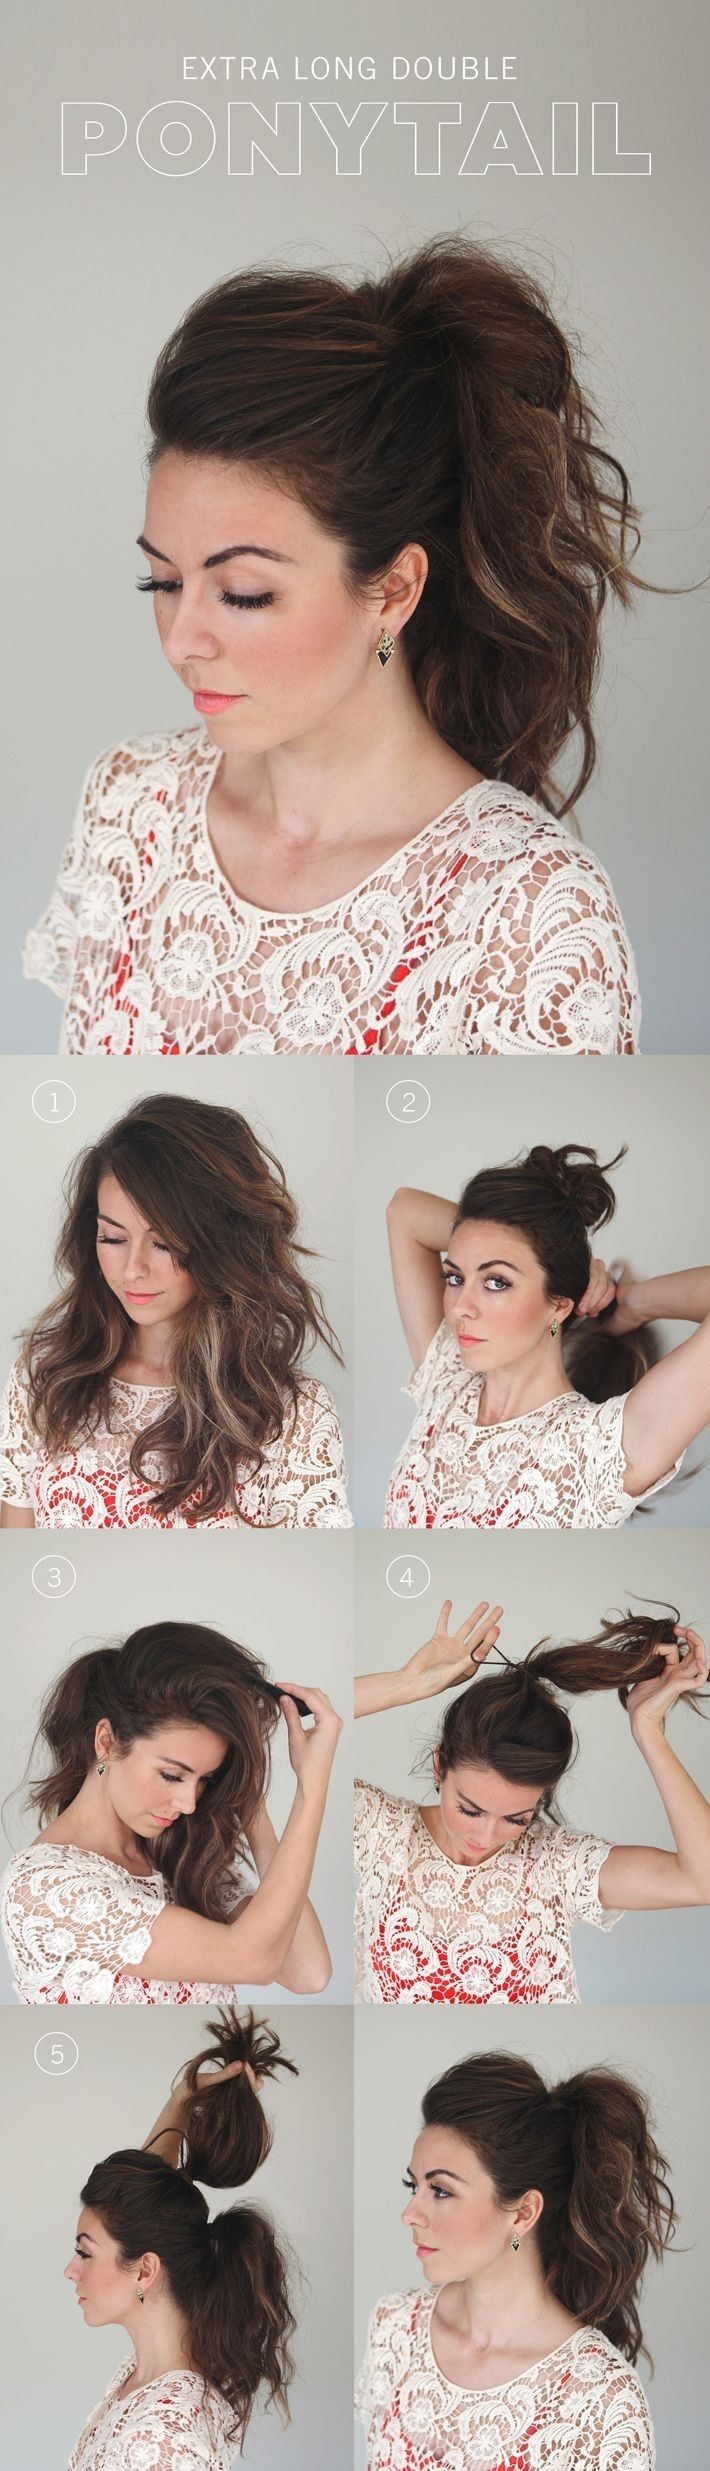 Create the Perfect High Volume Ponytail in 7 Easy...